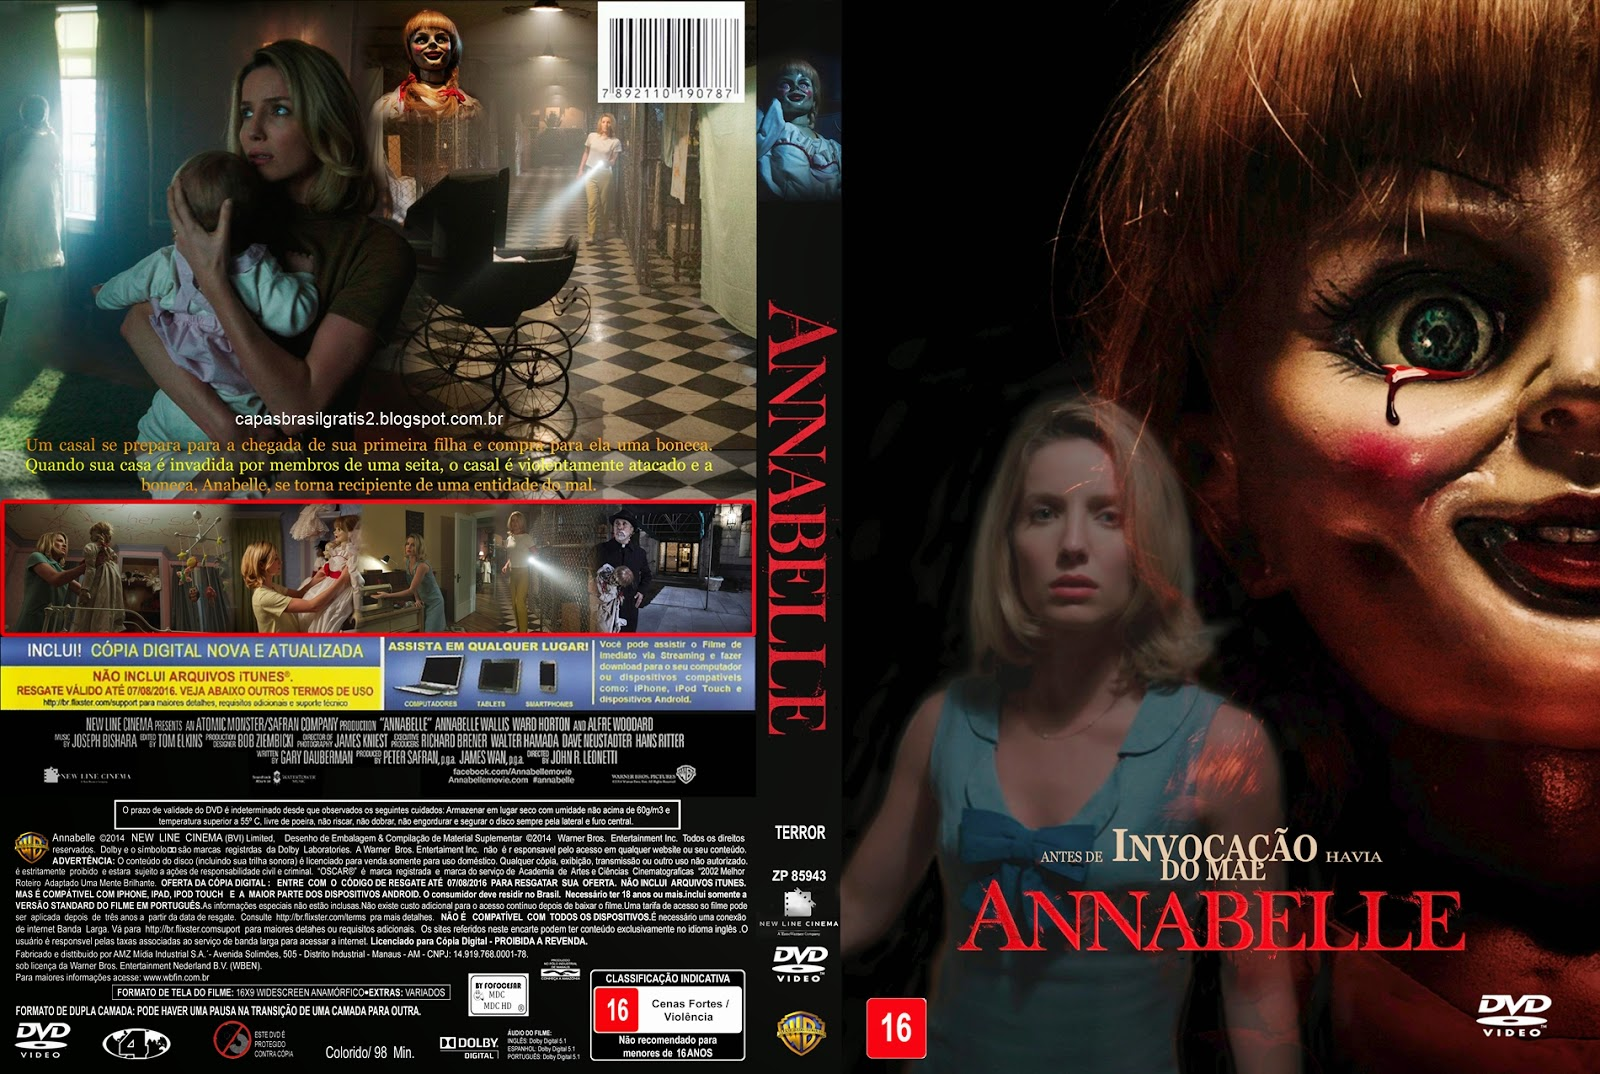 Download Annabelle HDRip XviD Dual Áudio Annabelle